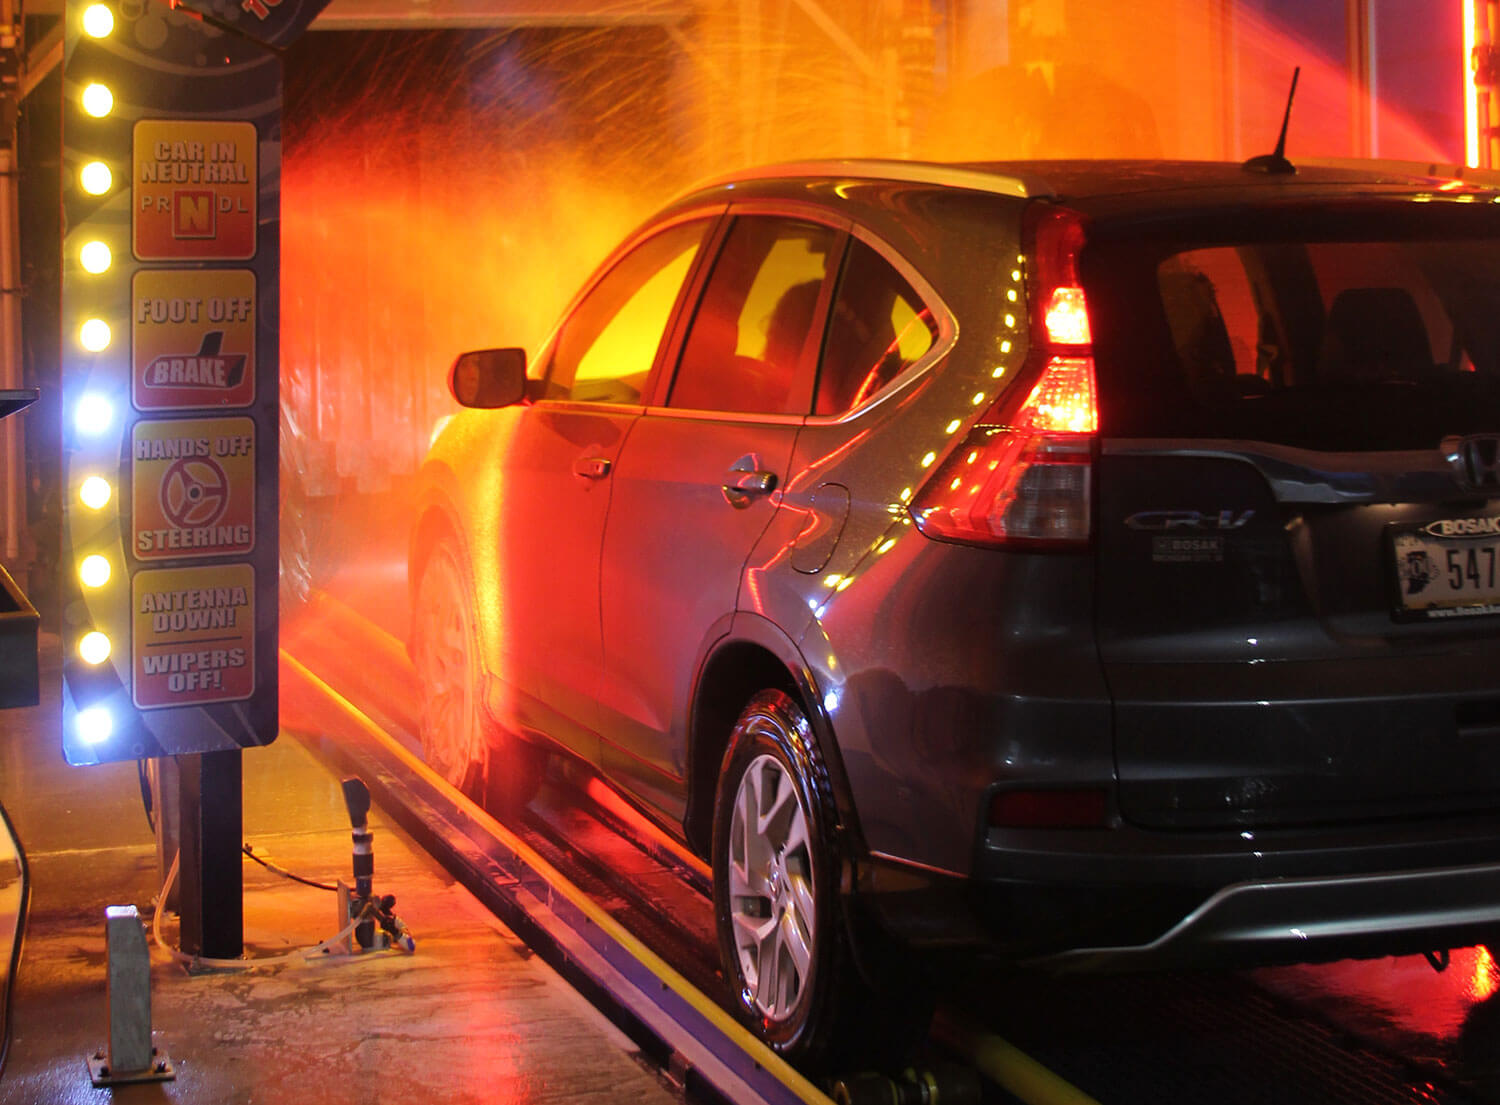 lava-wax-car-wash-our-story-top-left